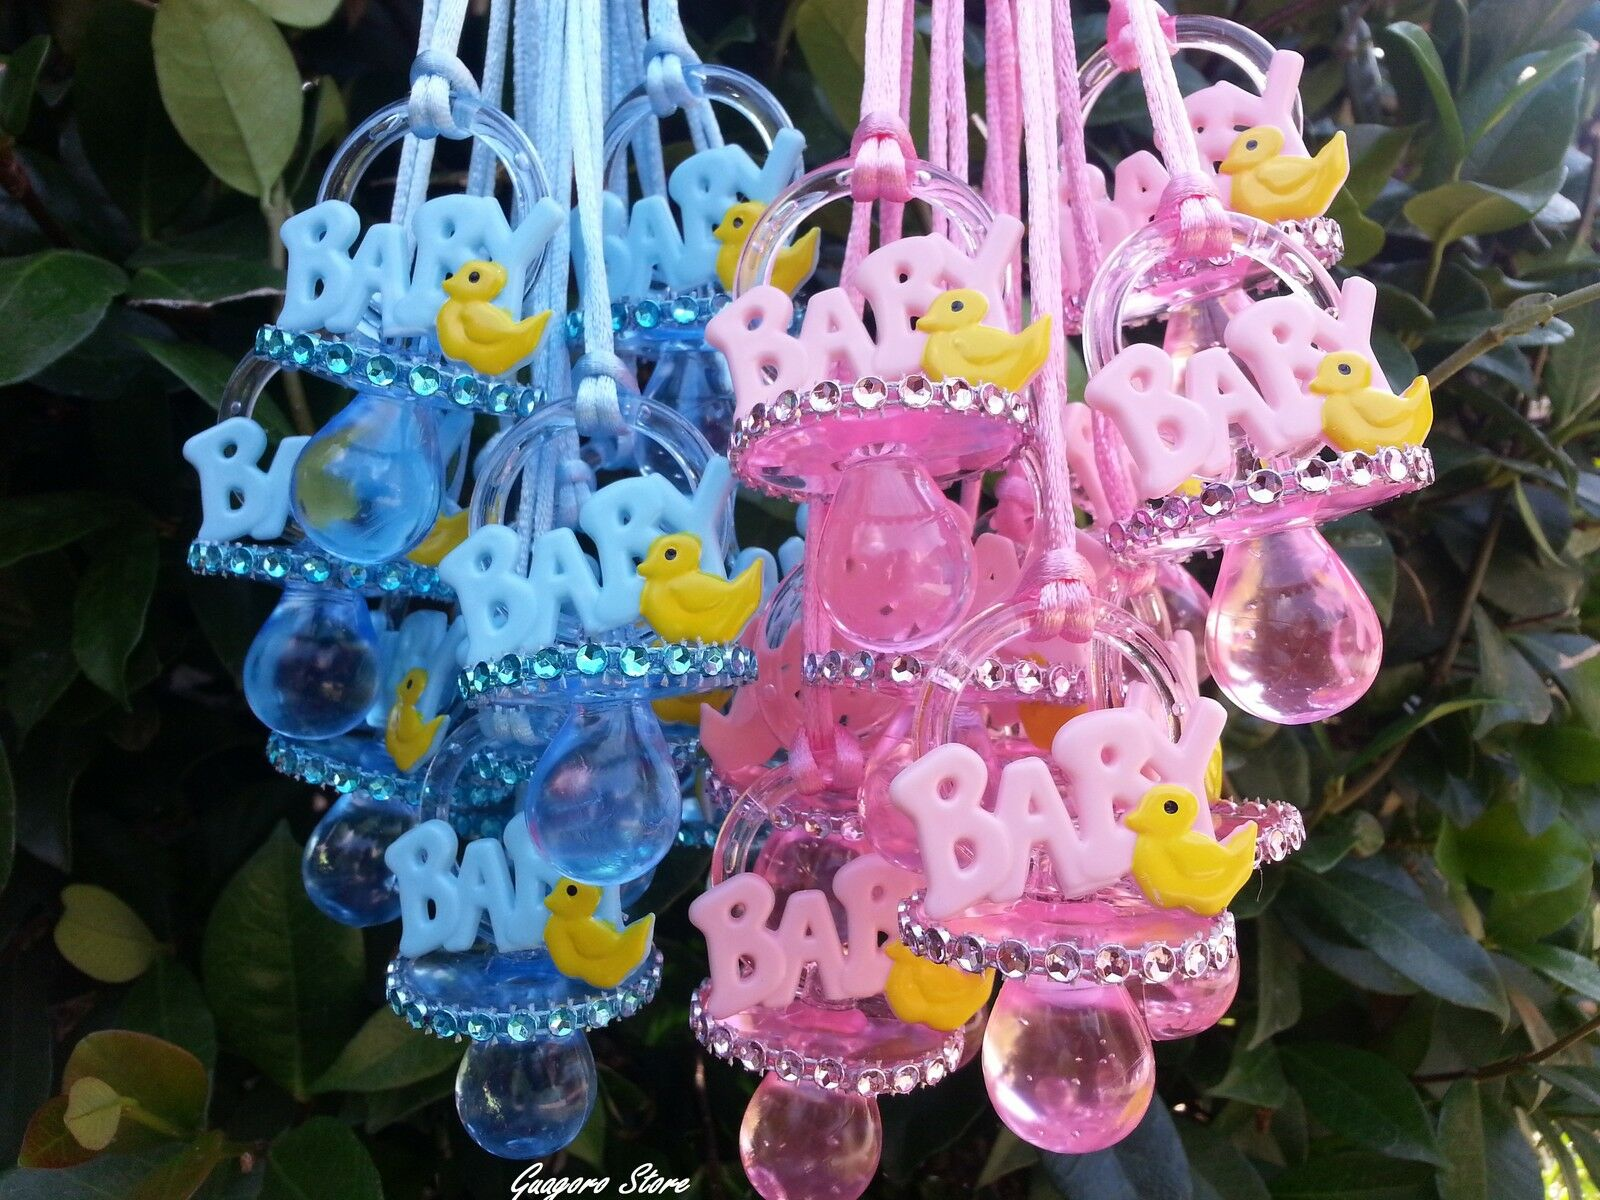 Duckling Pacifier Necklaces Baby Shower Games Duck Favors Prizes U Pick  Color